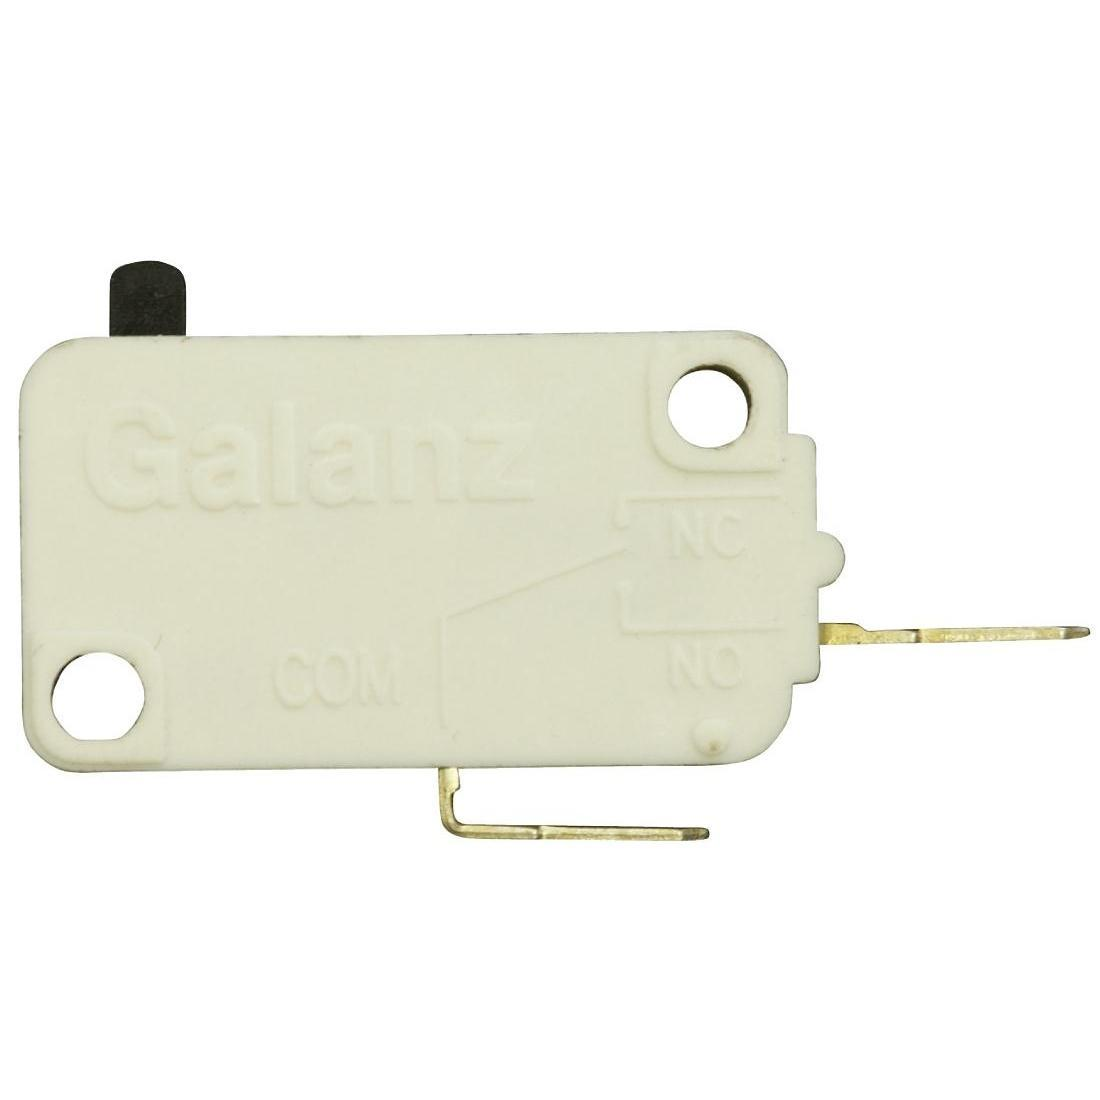 Buffalo Microswitch One Pin - AC239